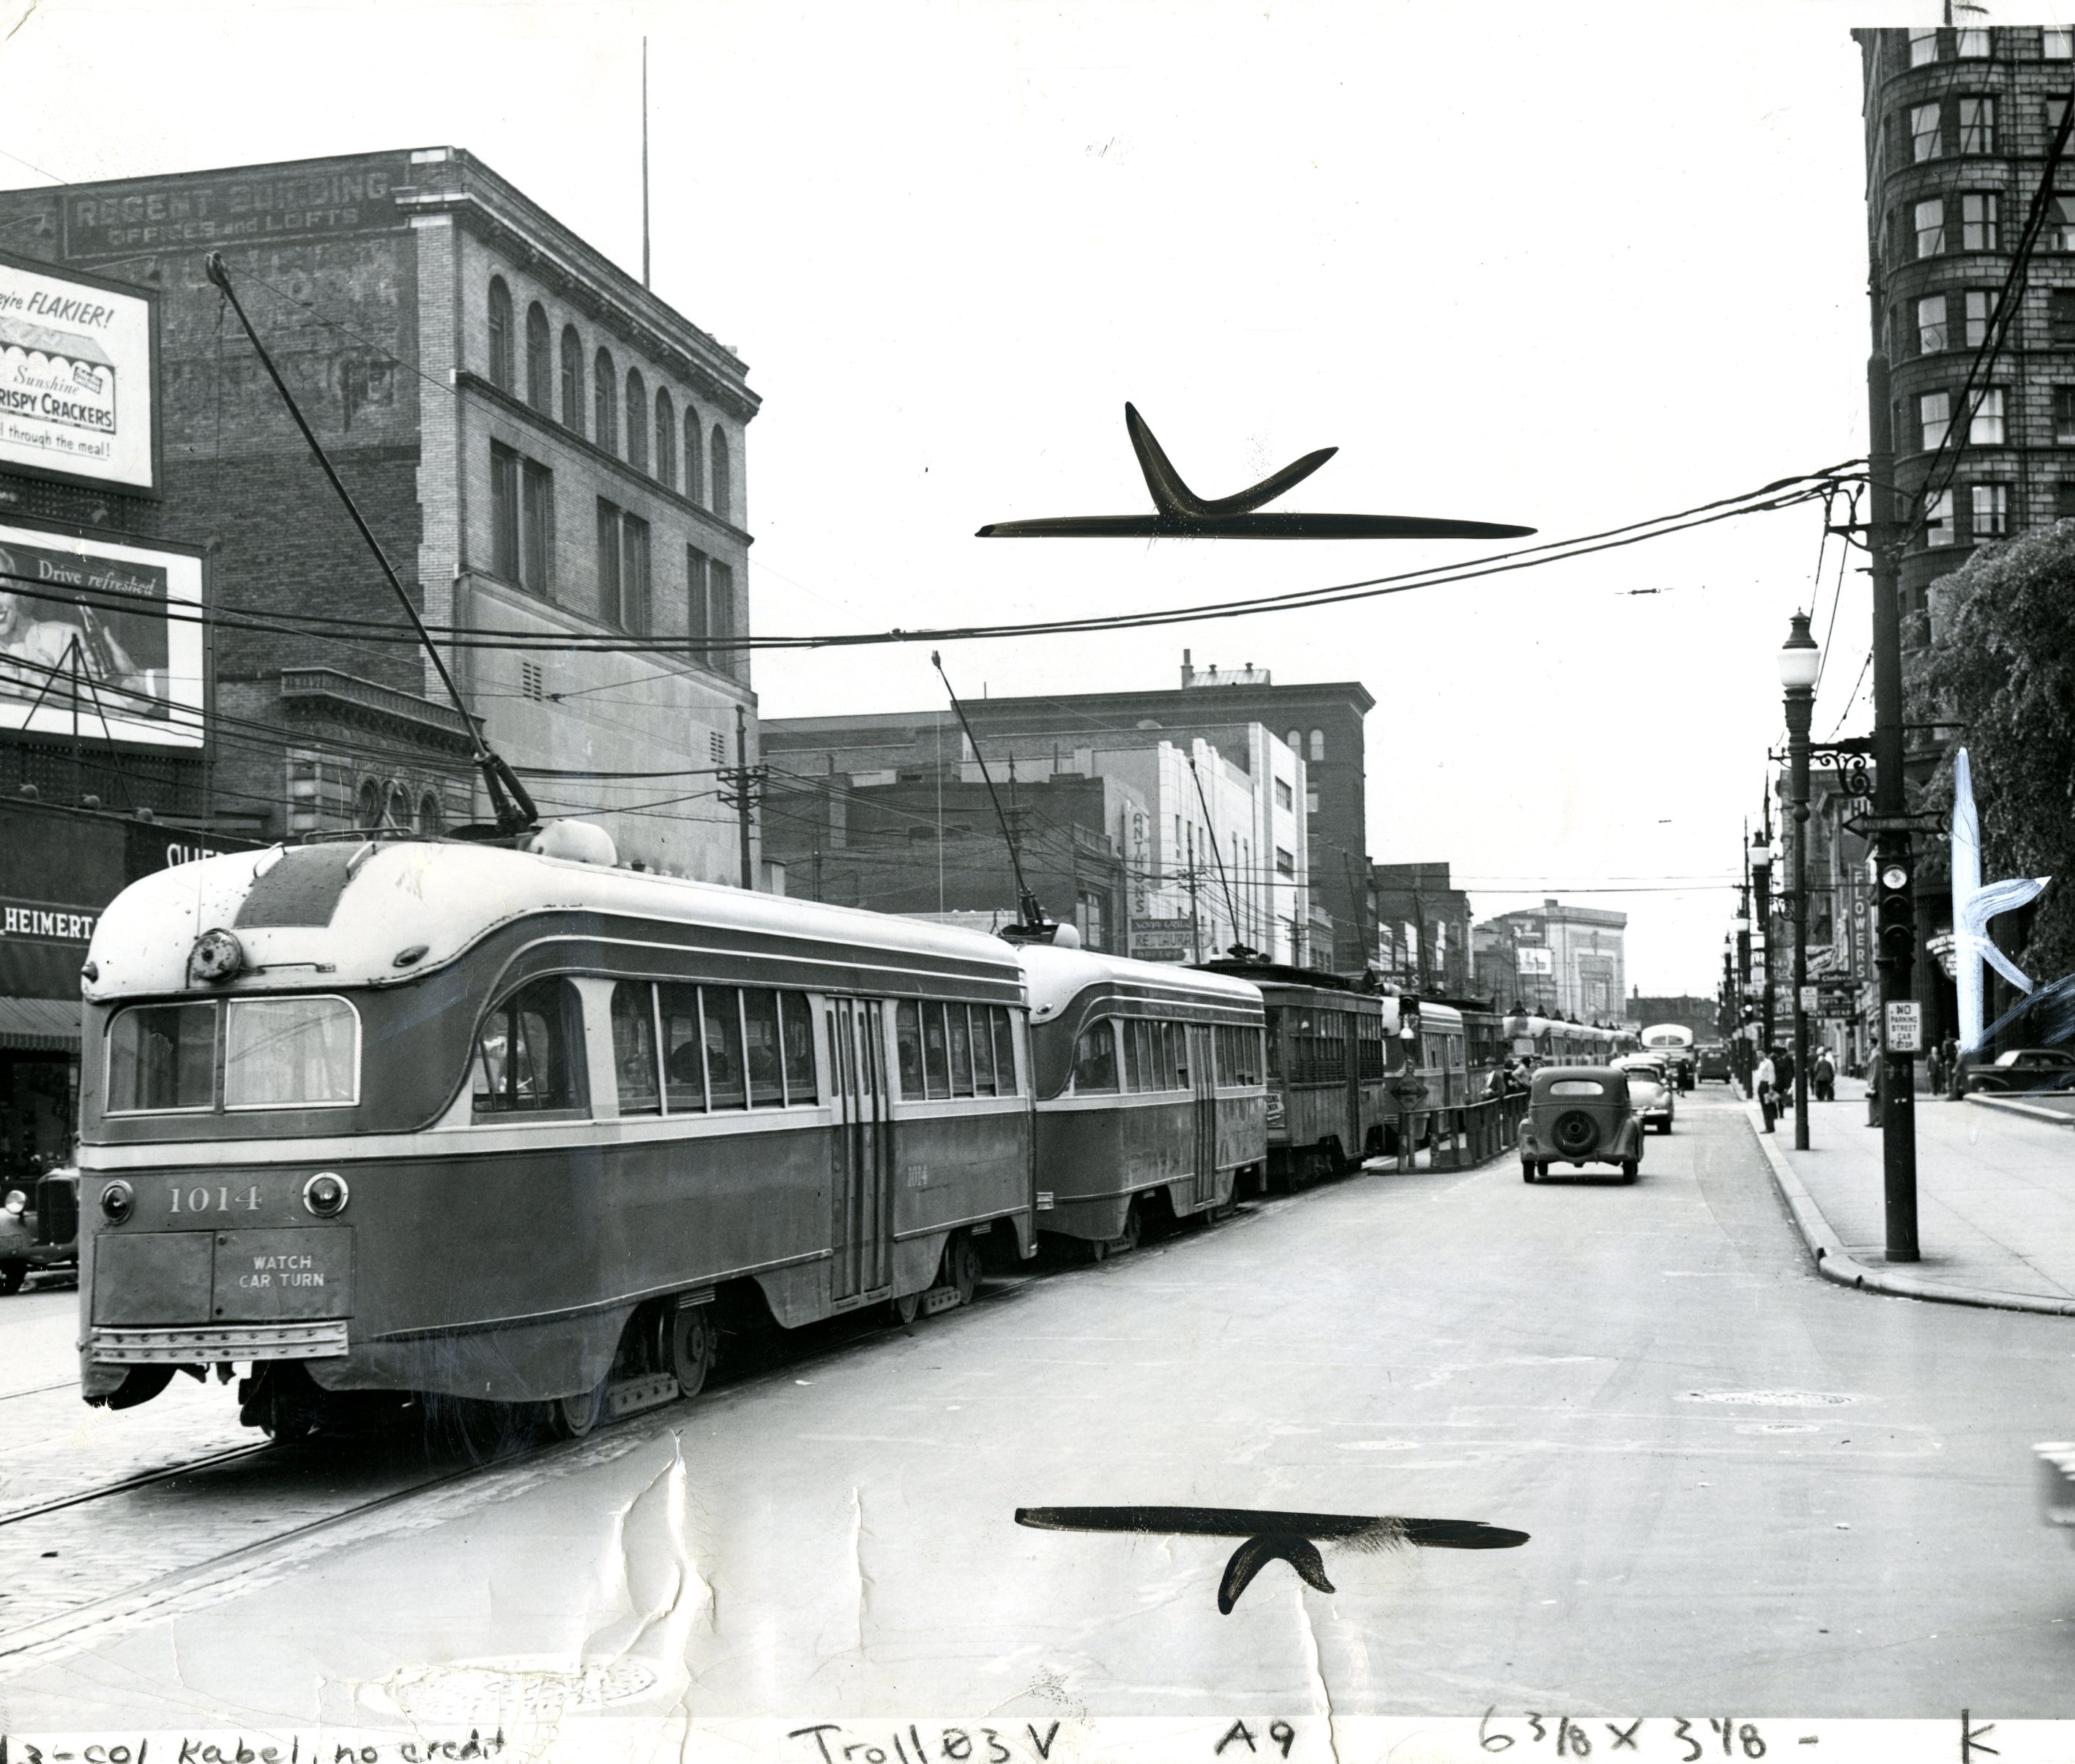 Trolley cars in East Liberty